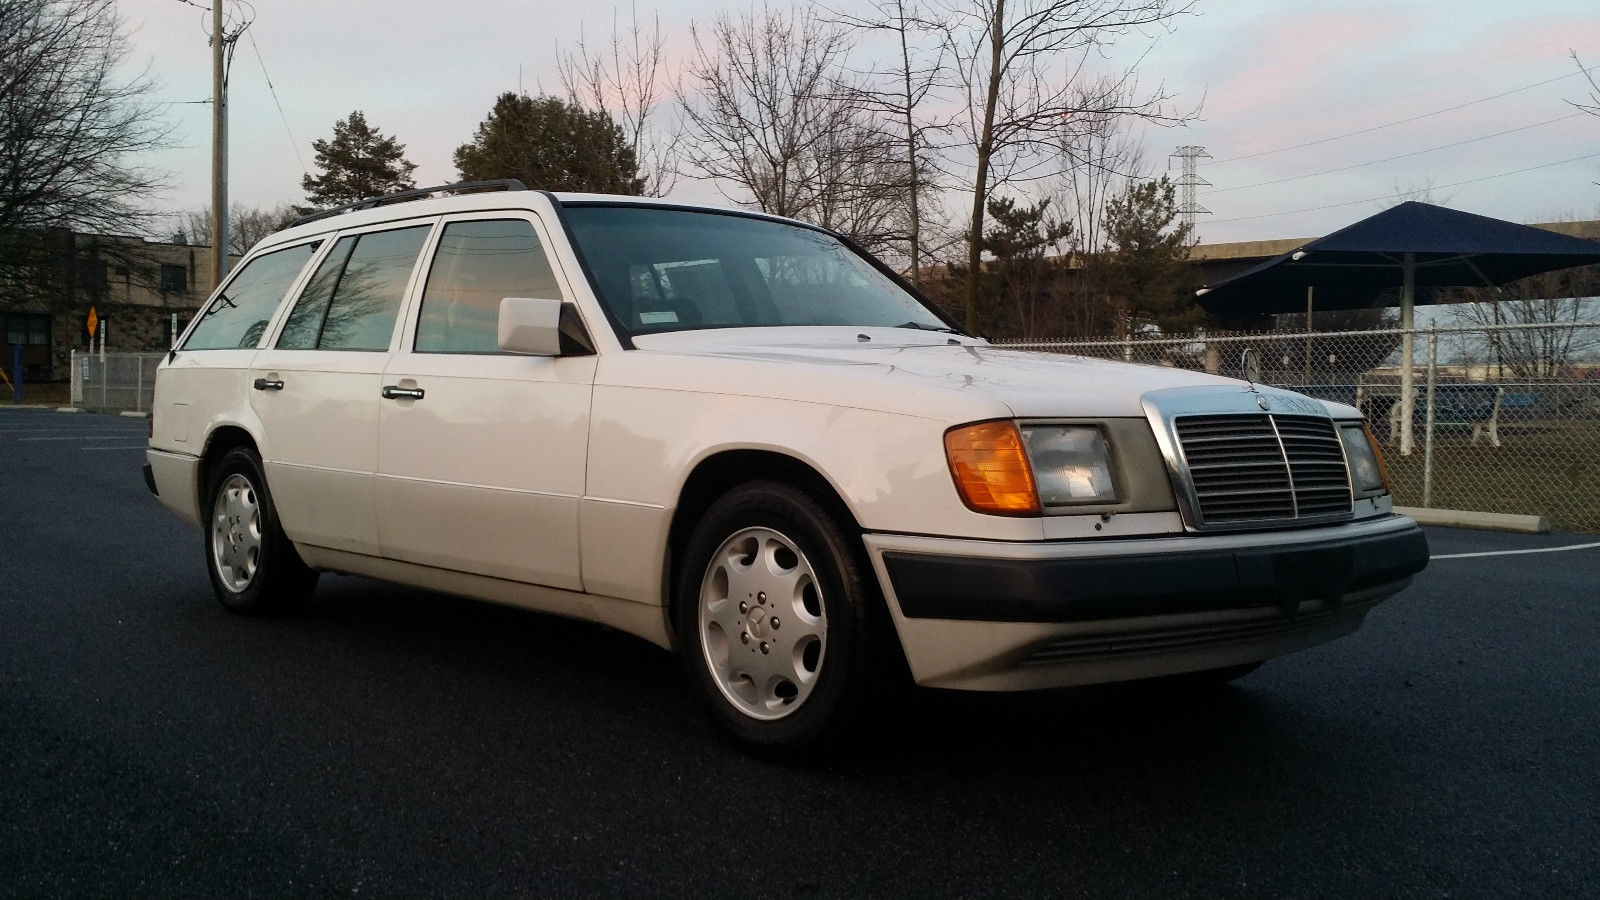 1992 mercedes benz 300te wagon with low miles and so clean for Benz mercedes for sale